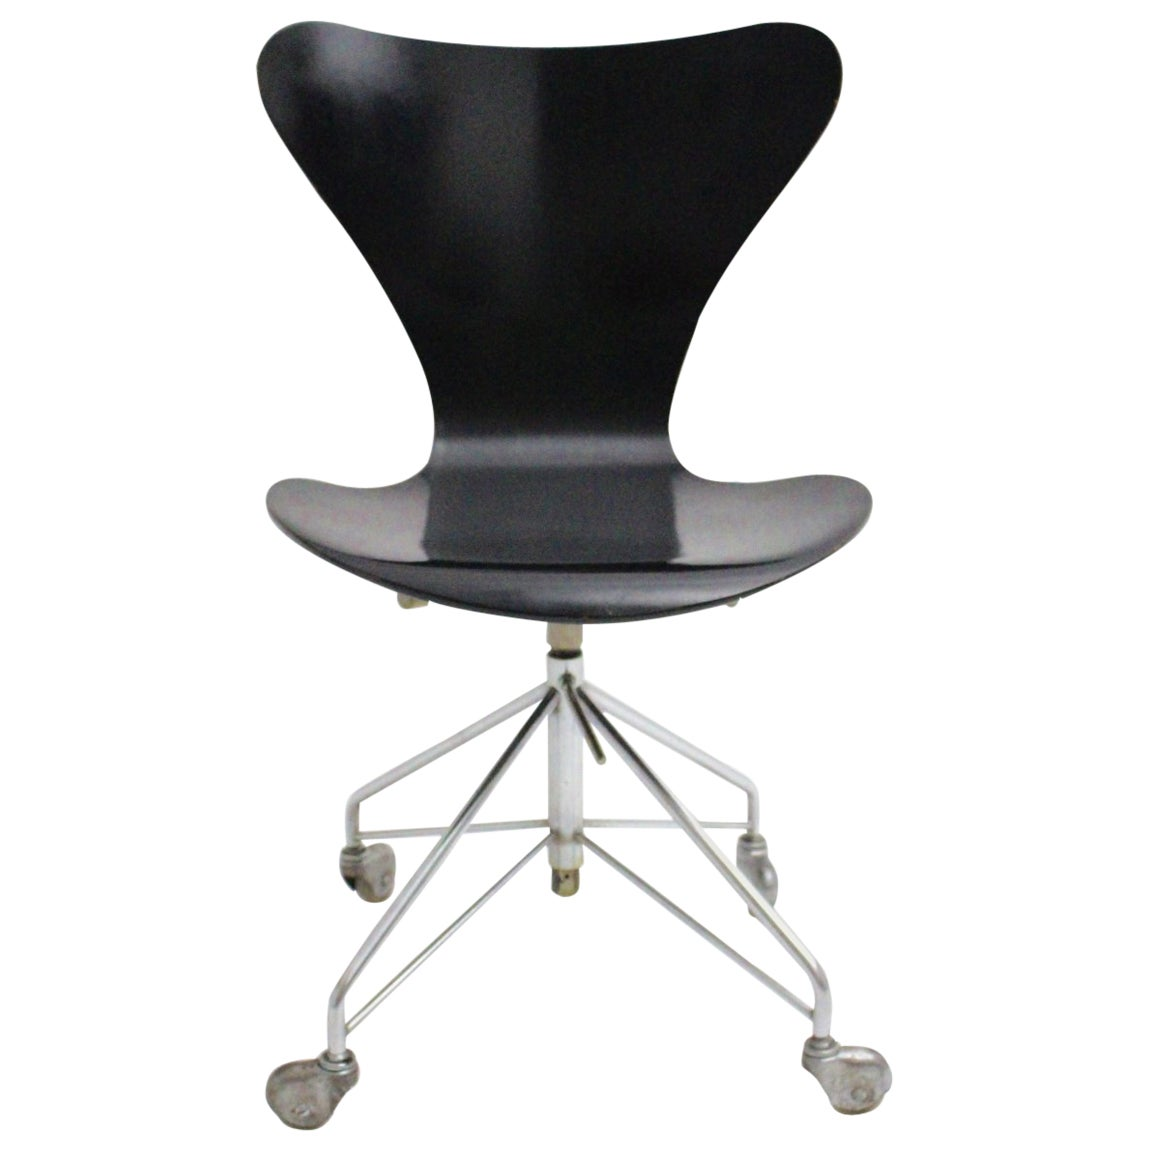 Mid Century Modern Vintage Black Office Chair by Arne Jacobsen 1950s,Denmark